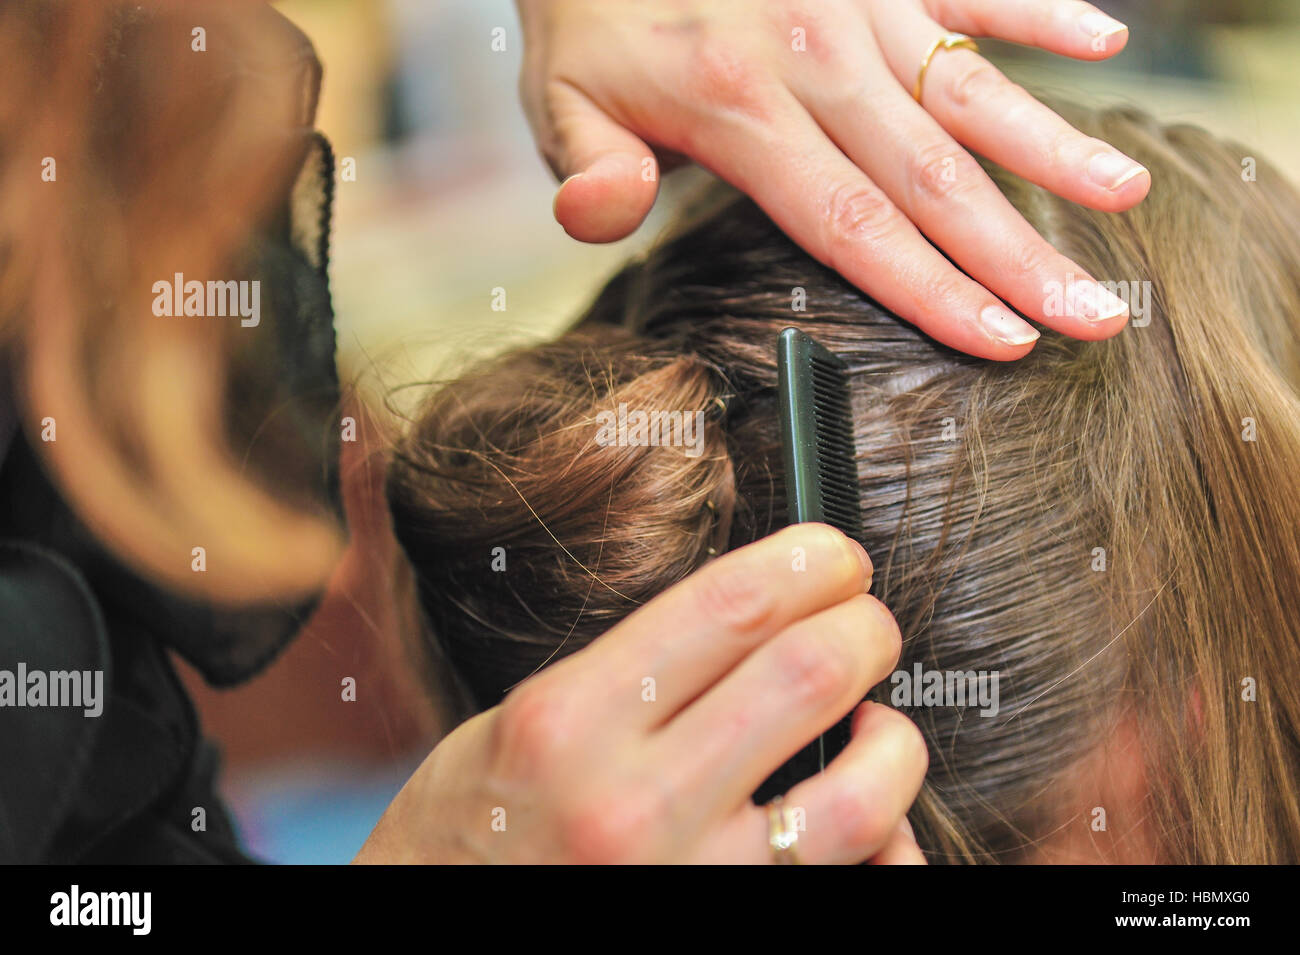 Hairdresser styling hair at the salon - Stock Image